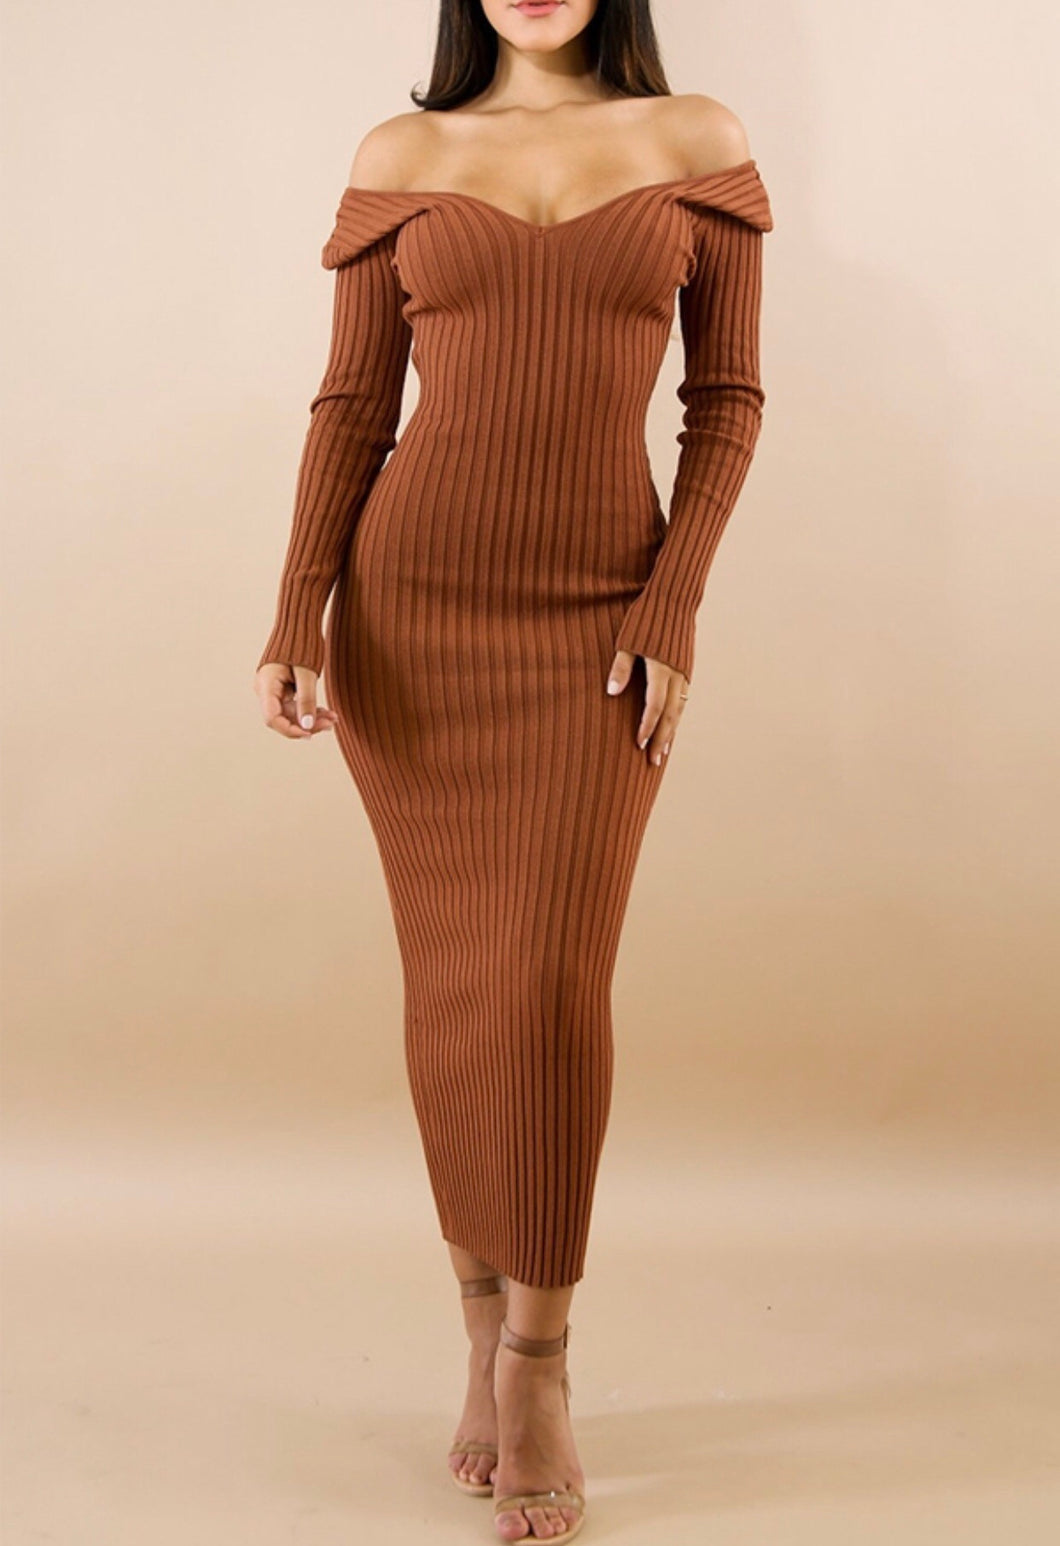 Mia Sweater Dress- Ginger